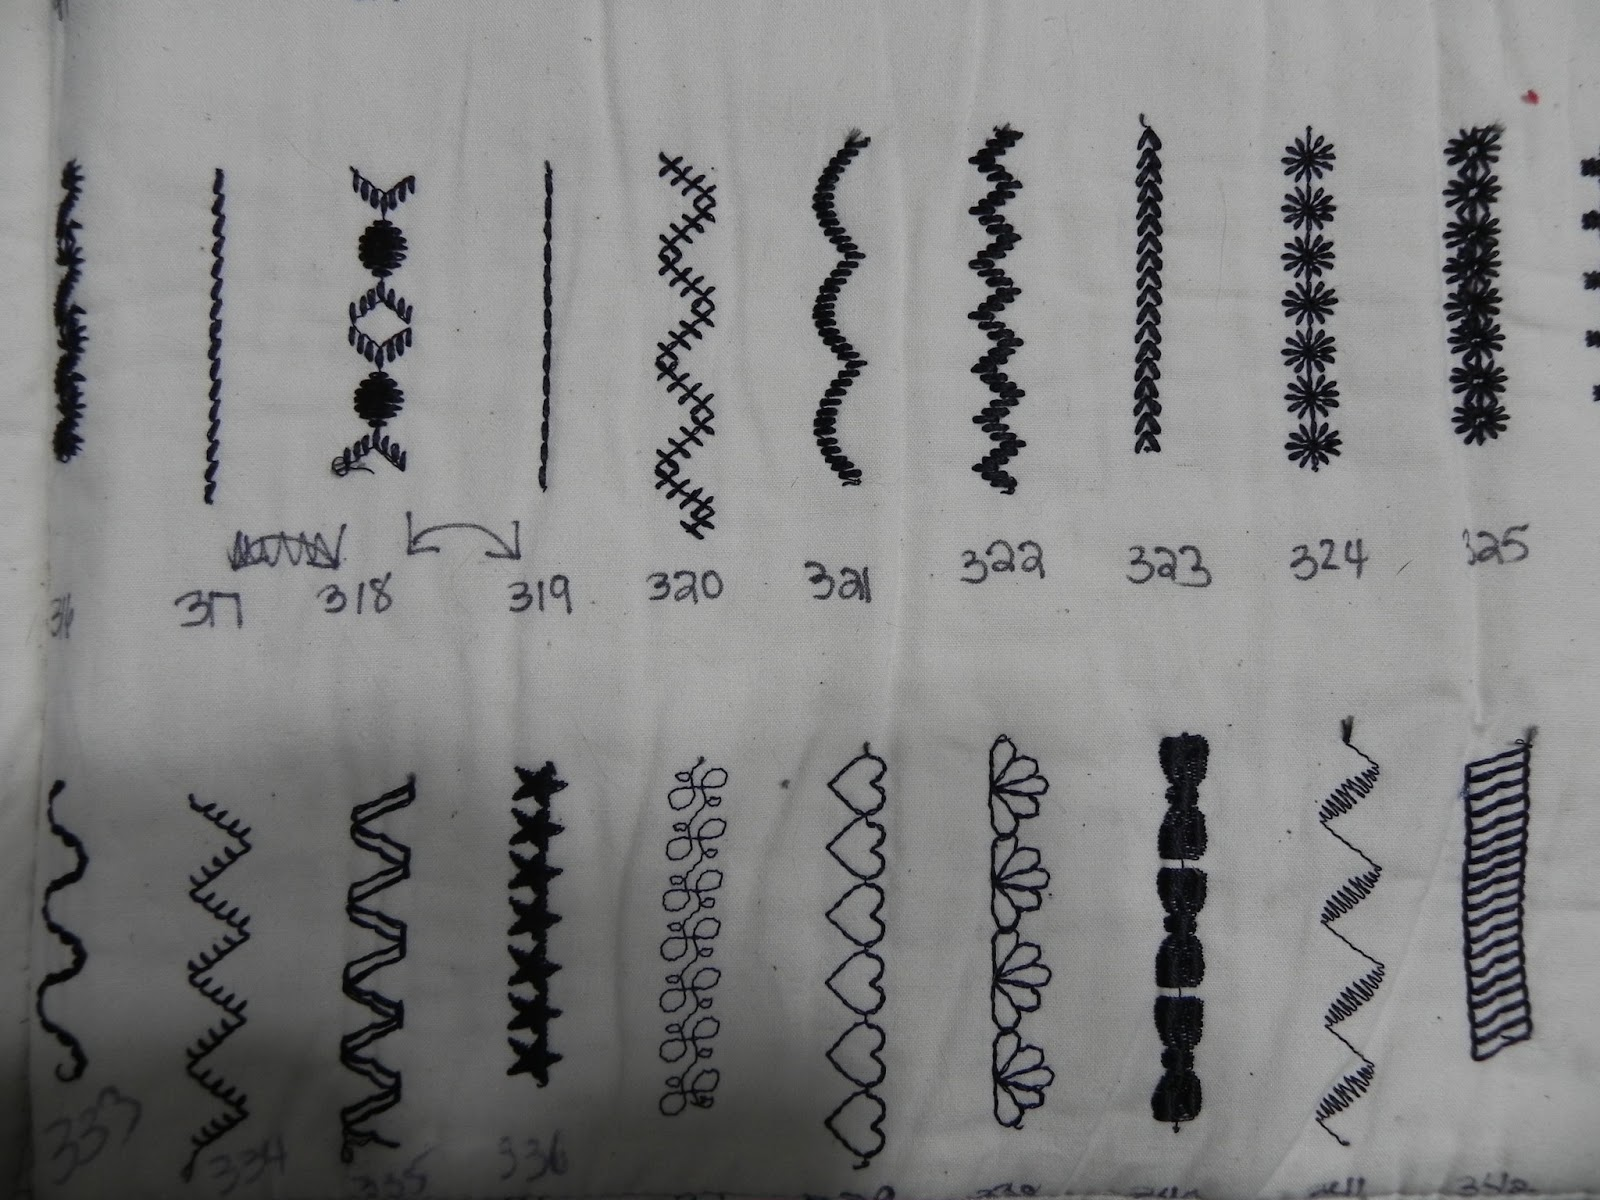 Dinah's Quilts and Embroidery: Sewing Machine Stitch ...